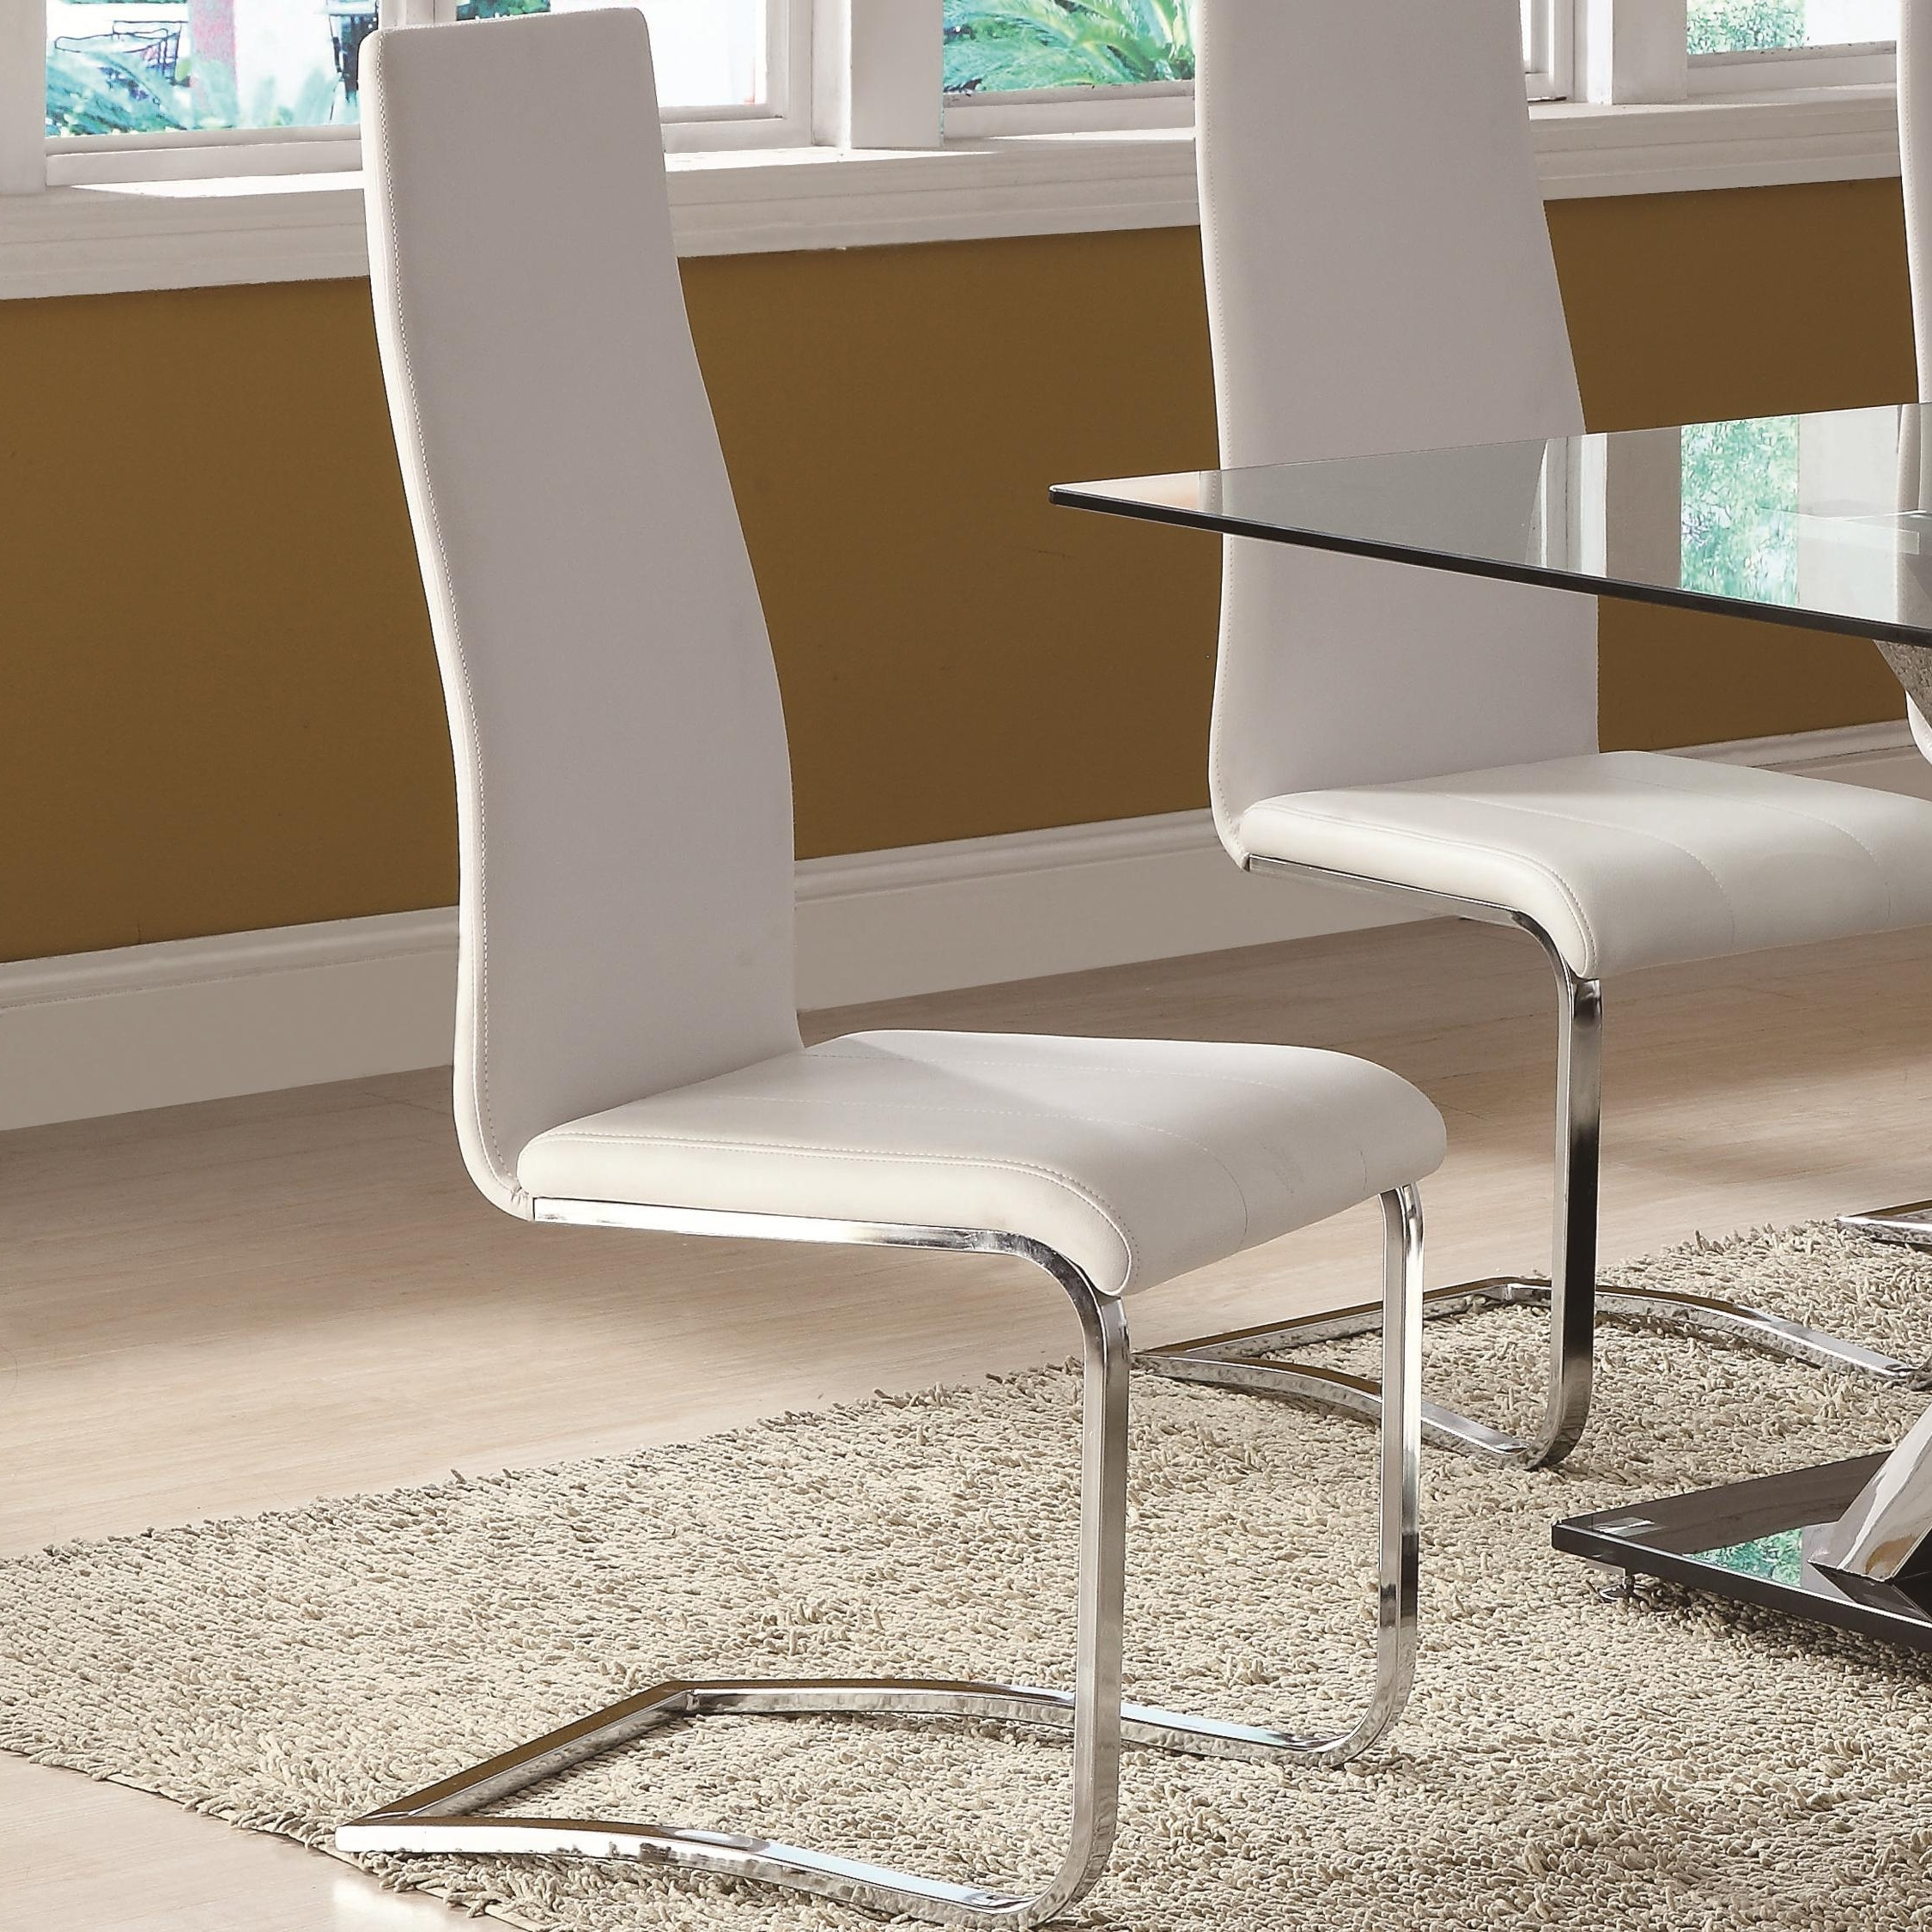 Widely Used White Leather Dining Room Chairs Throughout Modern Dining White Faux Leather Dining Chair With Chrome Legs (View 25 of 25)